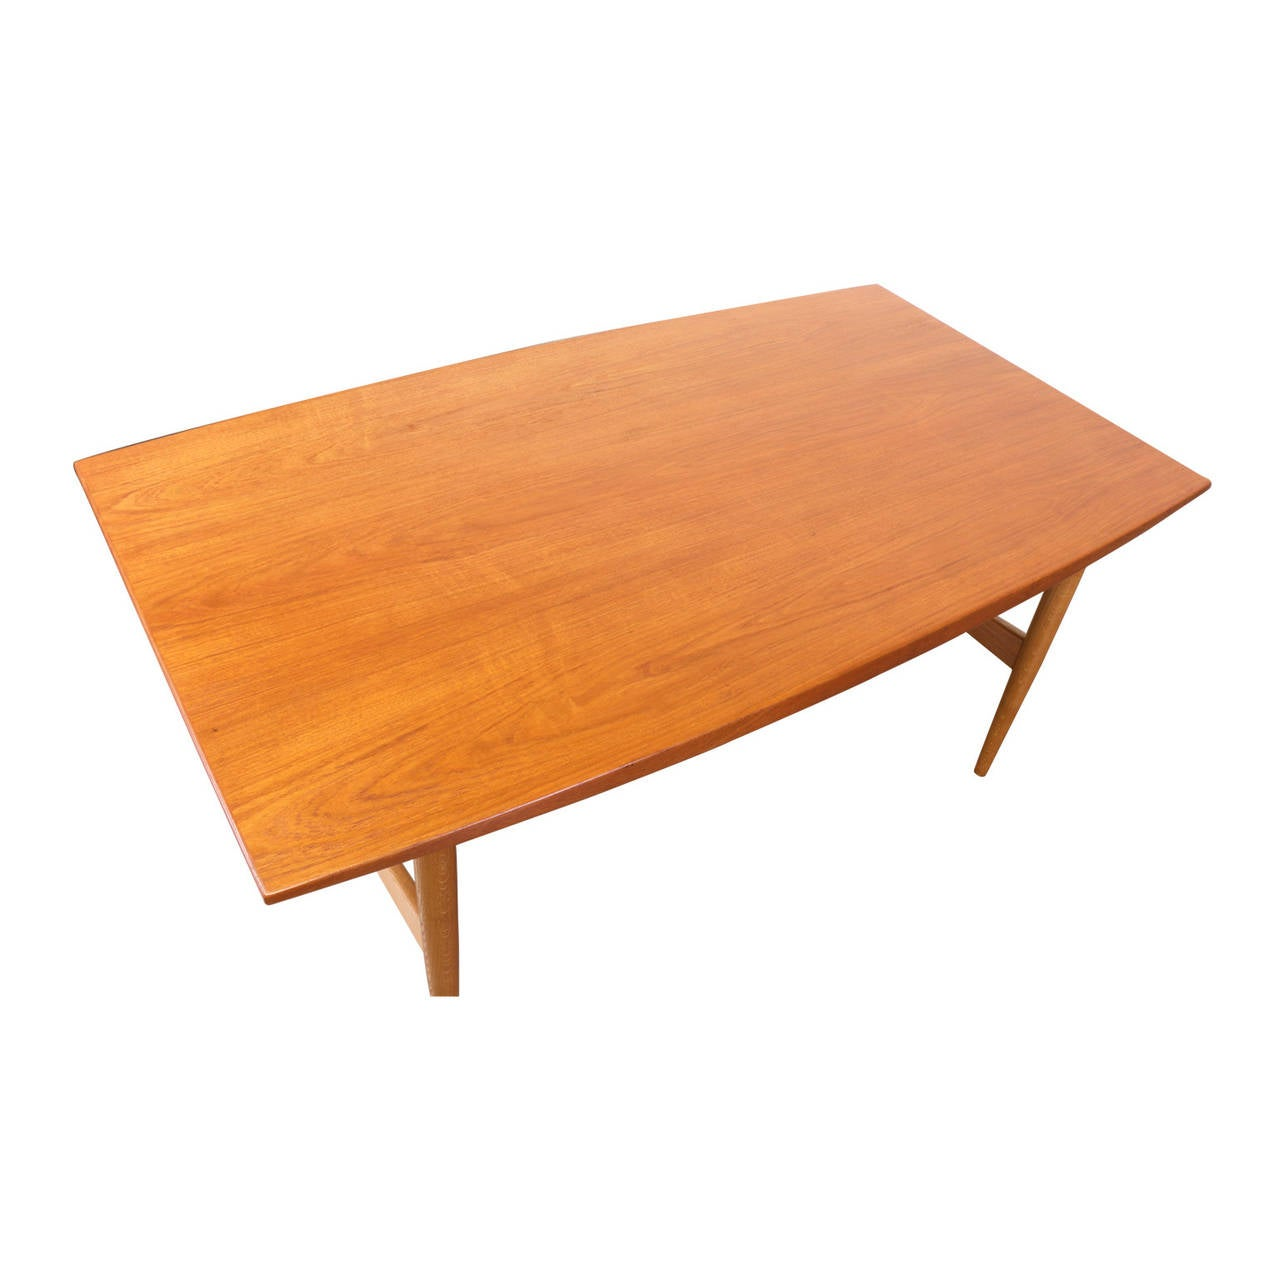 Danish modern teak and oak dining table with brass accent for Modern oak dining table